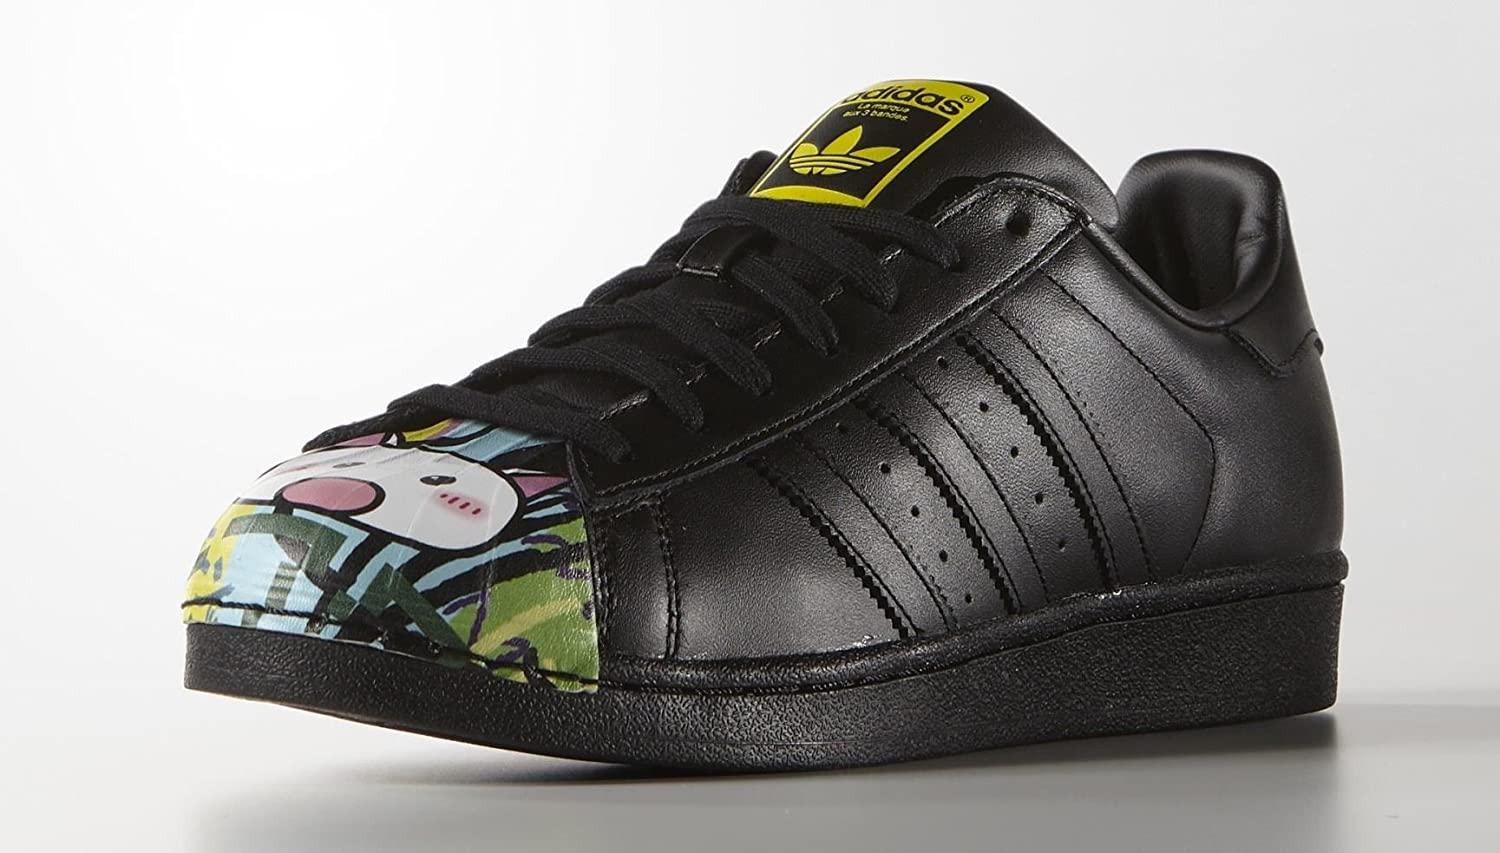 new arrivals 609b6 0e552 adidas Superstar Pharrell Williams Supershell Shoes (12, Black Yellow Green  (s83358))  Amazon.co.uk  Shoes   Bags